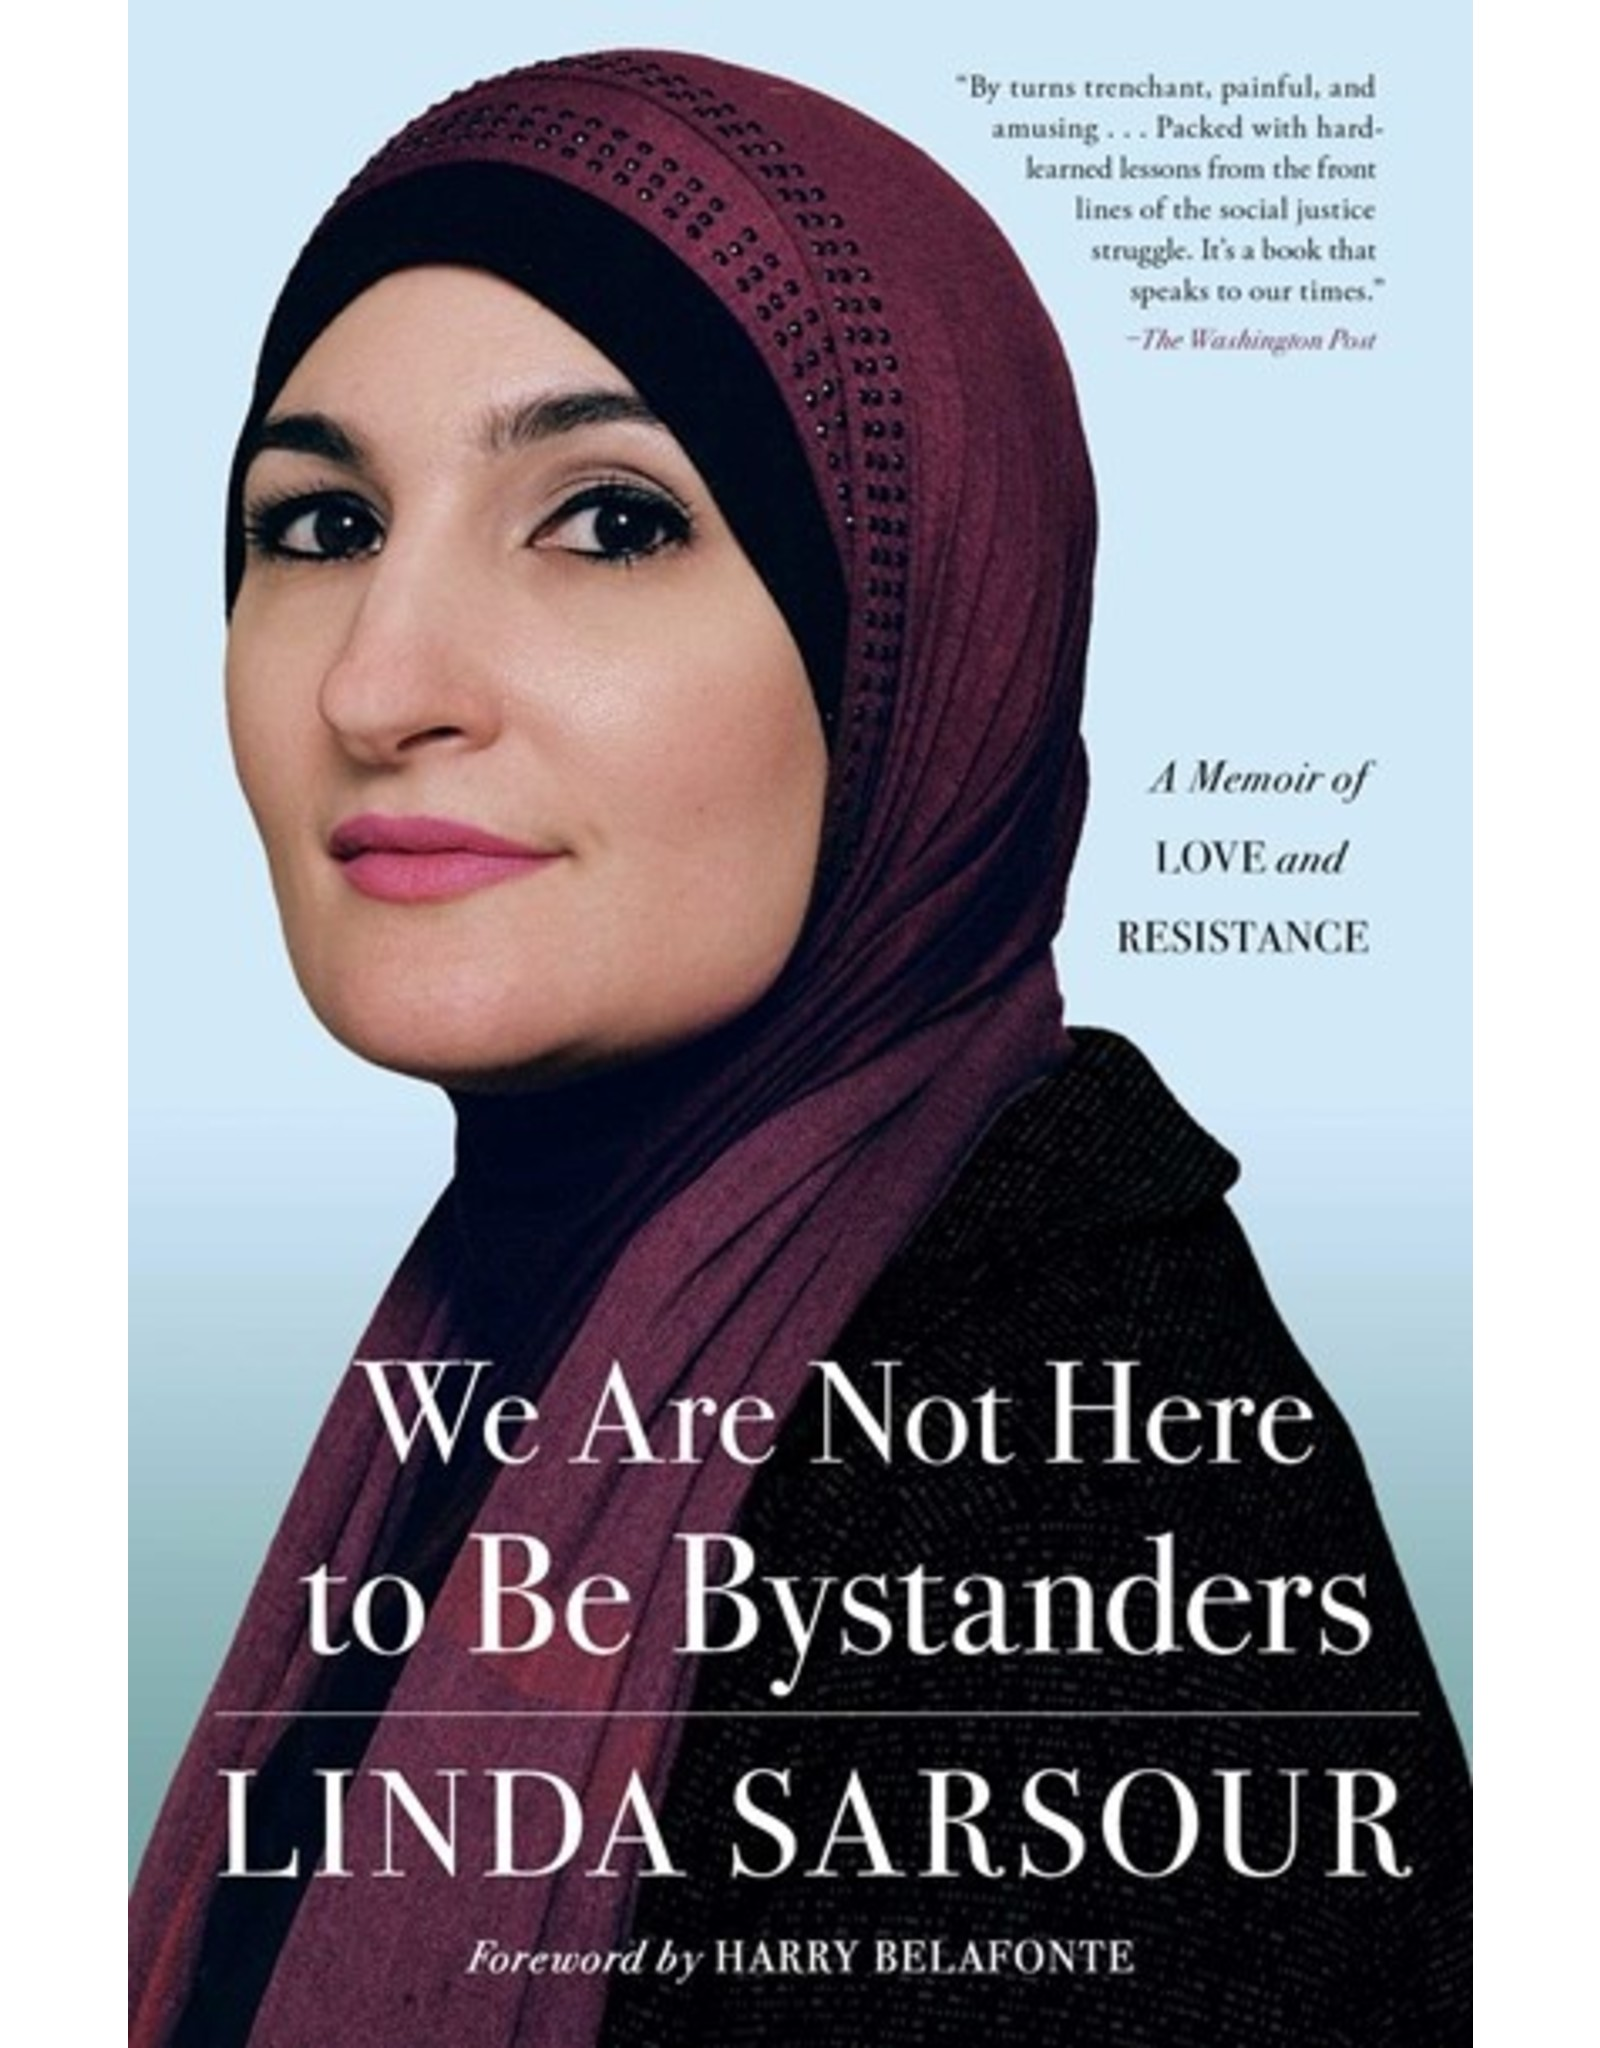 Books We are Not Here to be Bystanders by Linda Sarsour (NABF21)